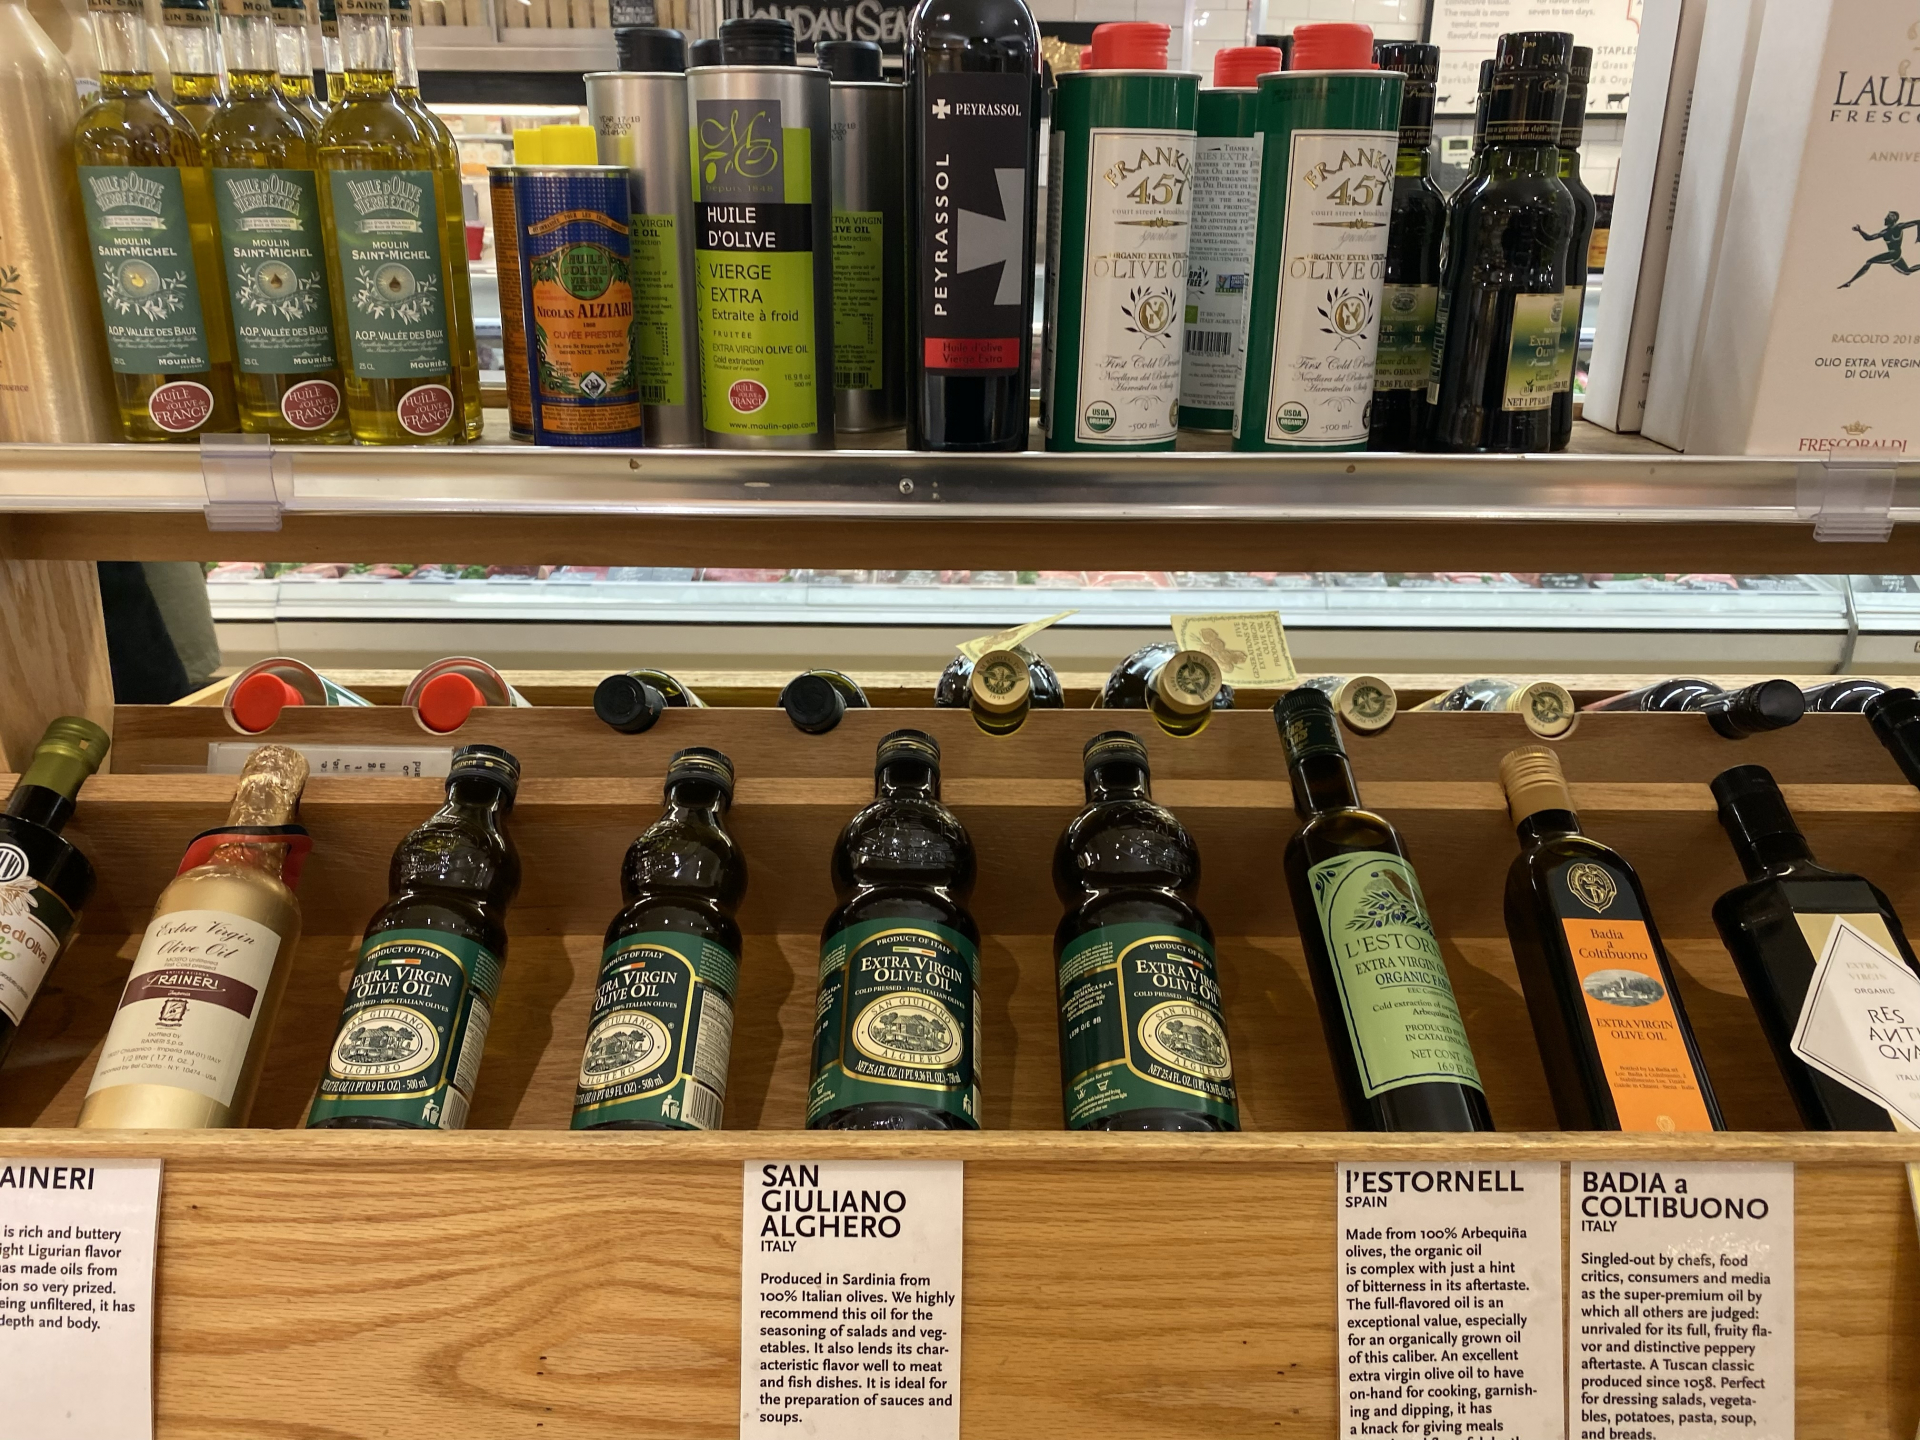 Olive Oil stocked in Italy. Update of 21 April 2020